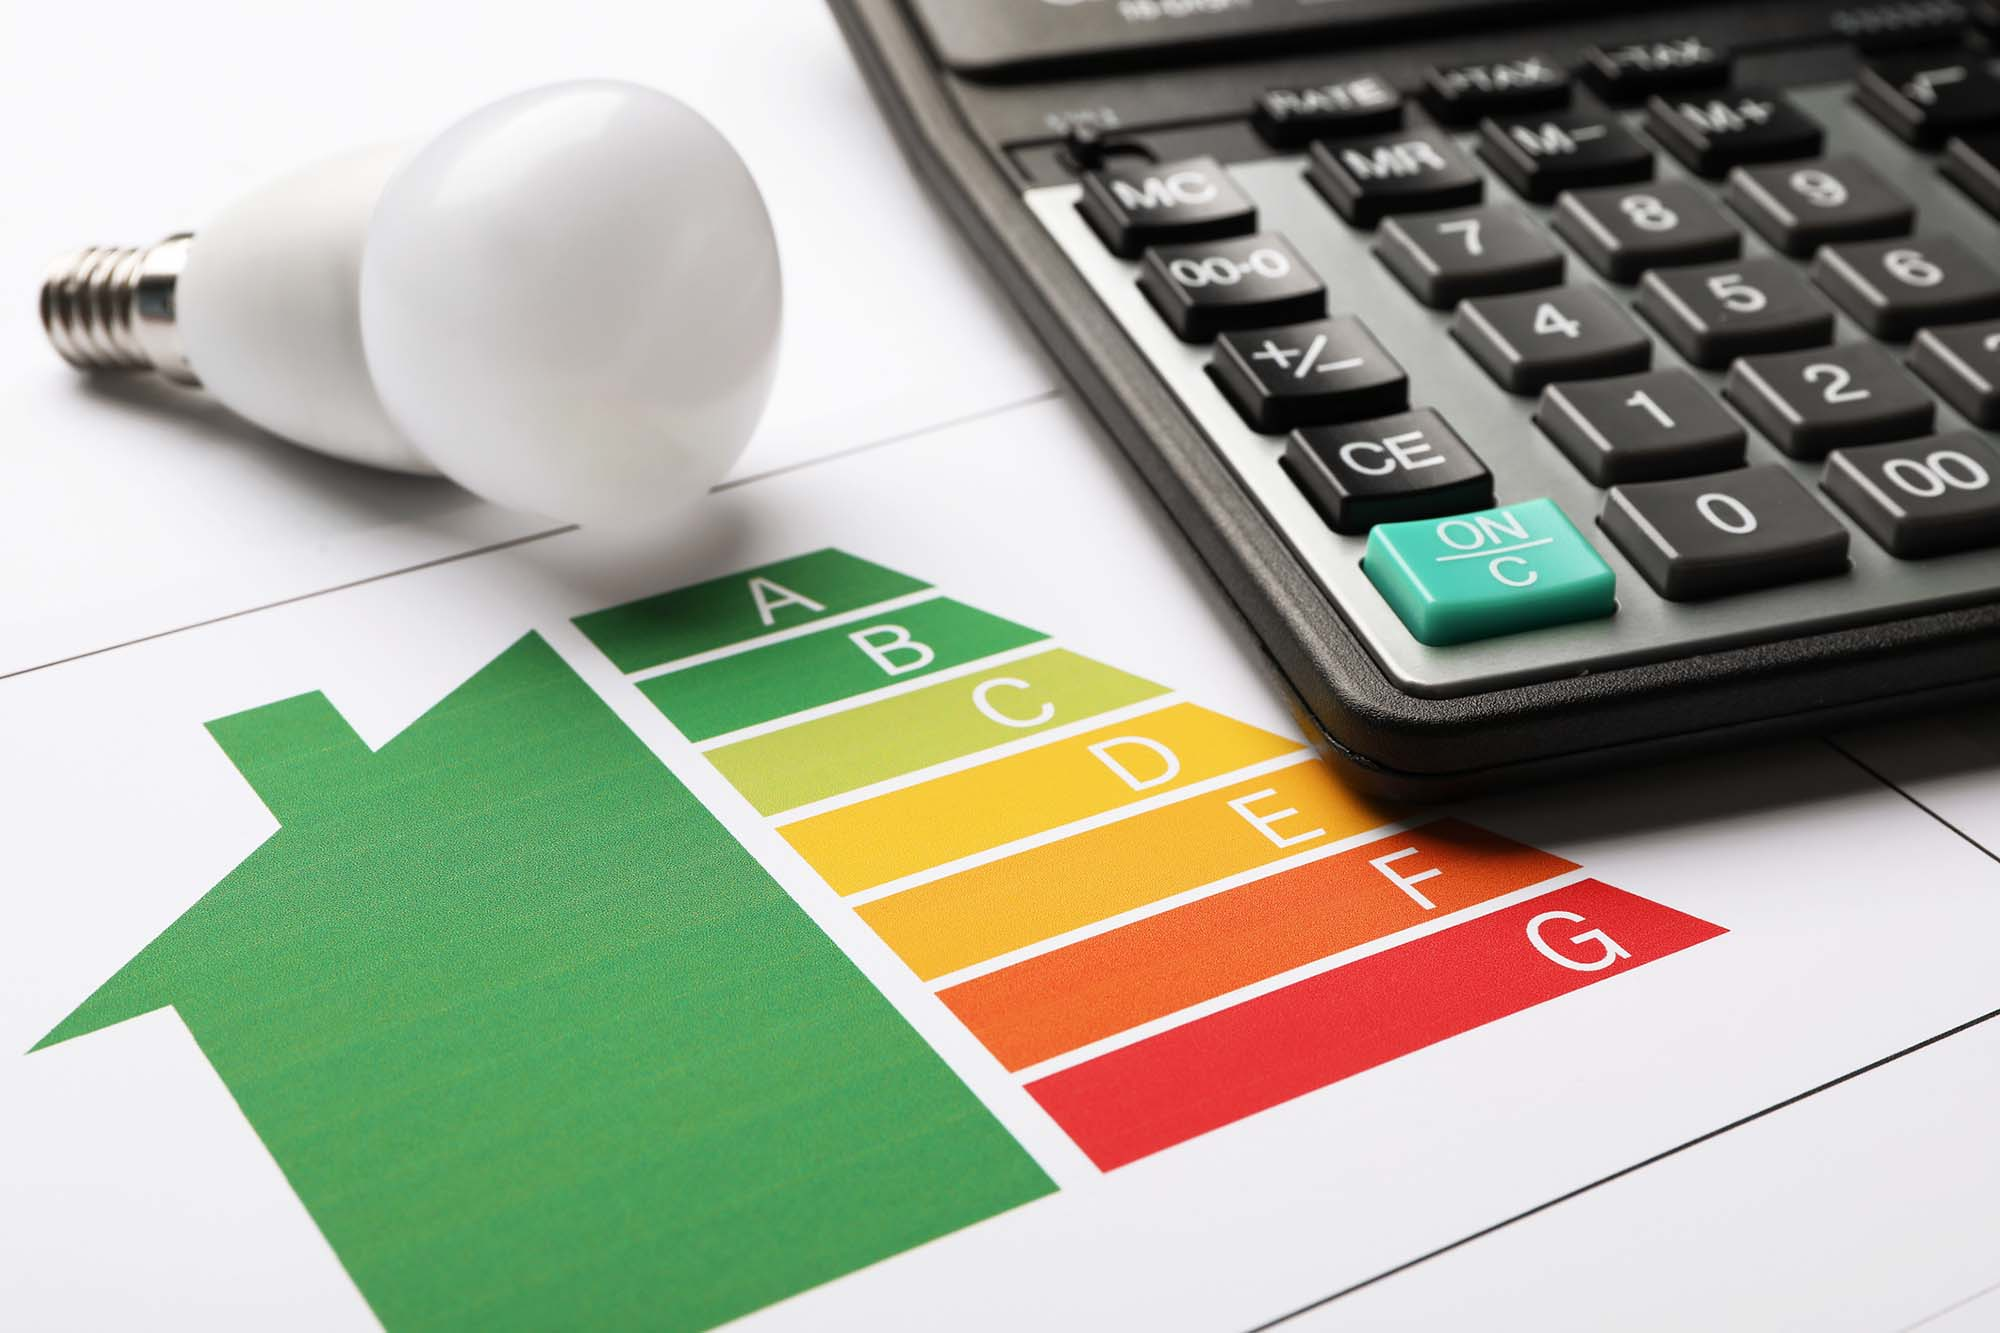 Energy efficiency rating chart, LED light bulb and calculator on